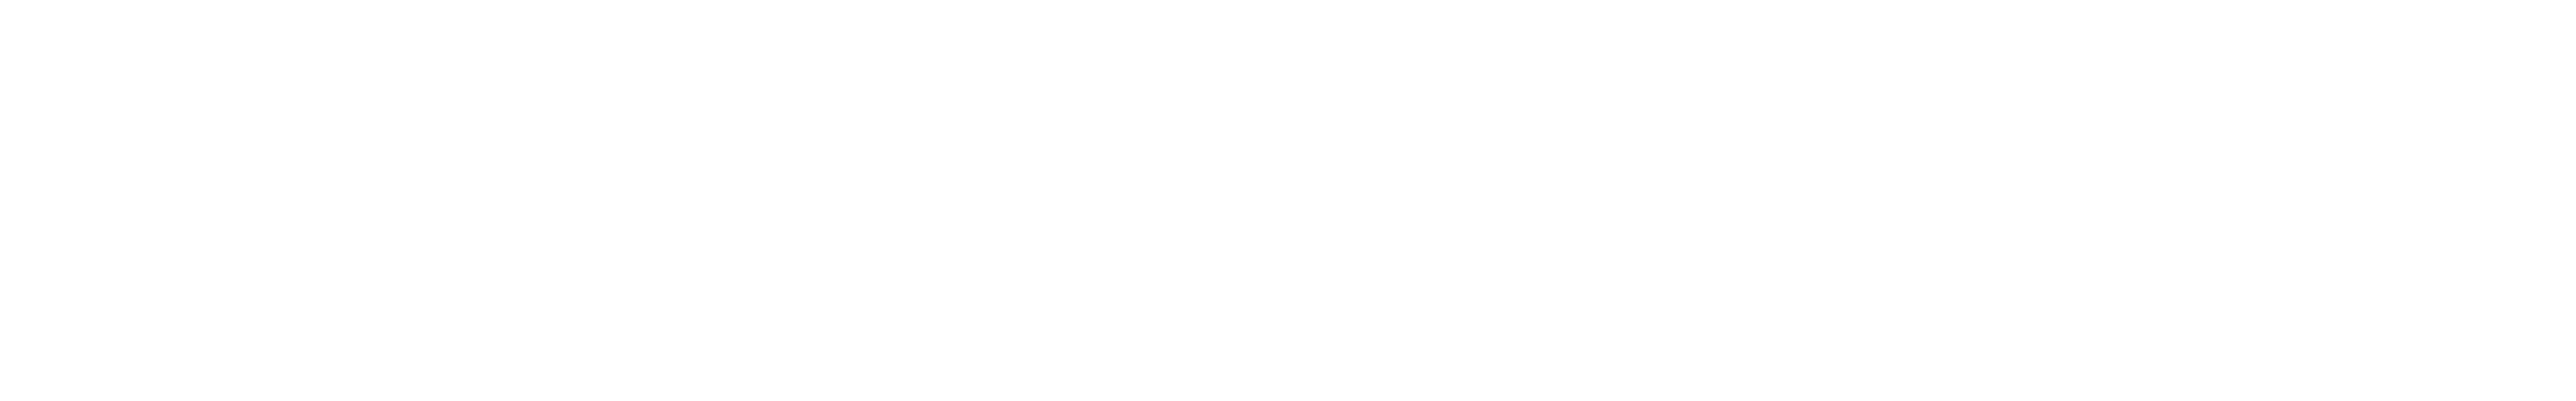 Avalon at Northbrook Apartments & Townhomes